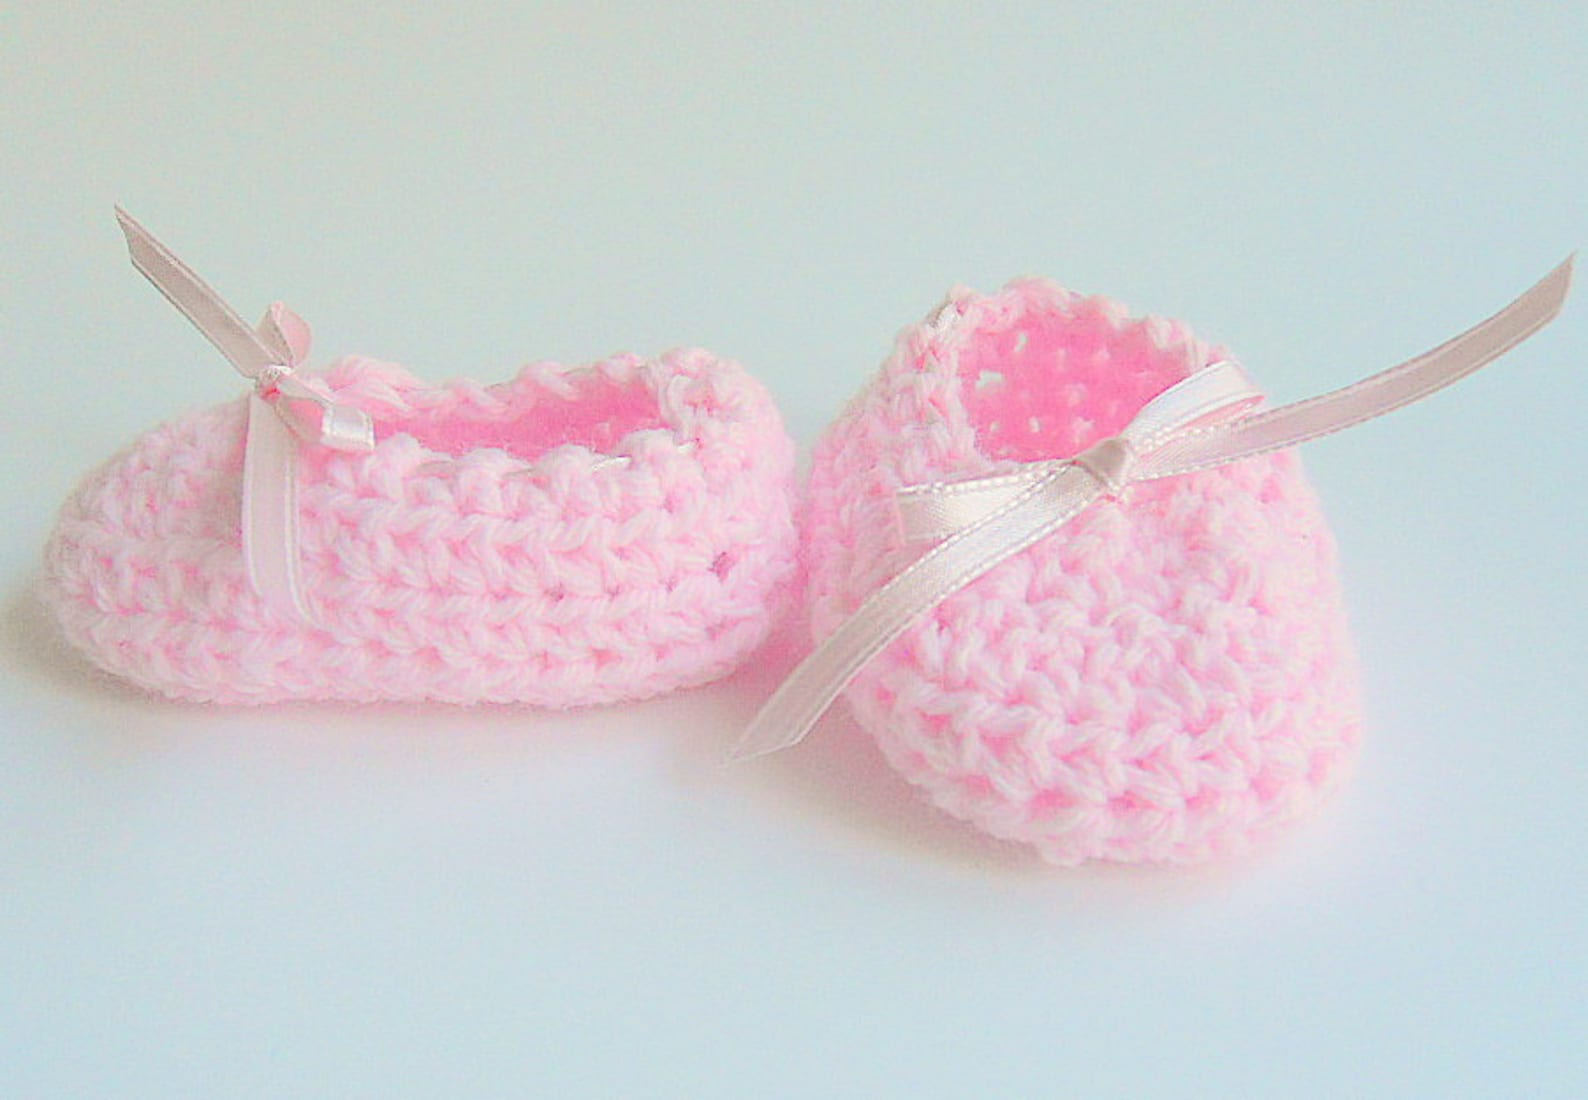 pink baby booties infant girl ballet slippers crochet light pastel ballerina shoes newborn 3 6 9 months crib shoes ready to ship